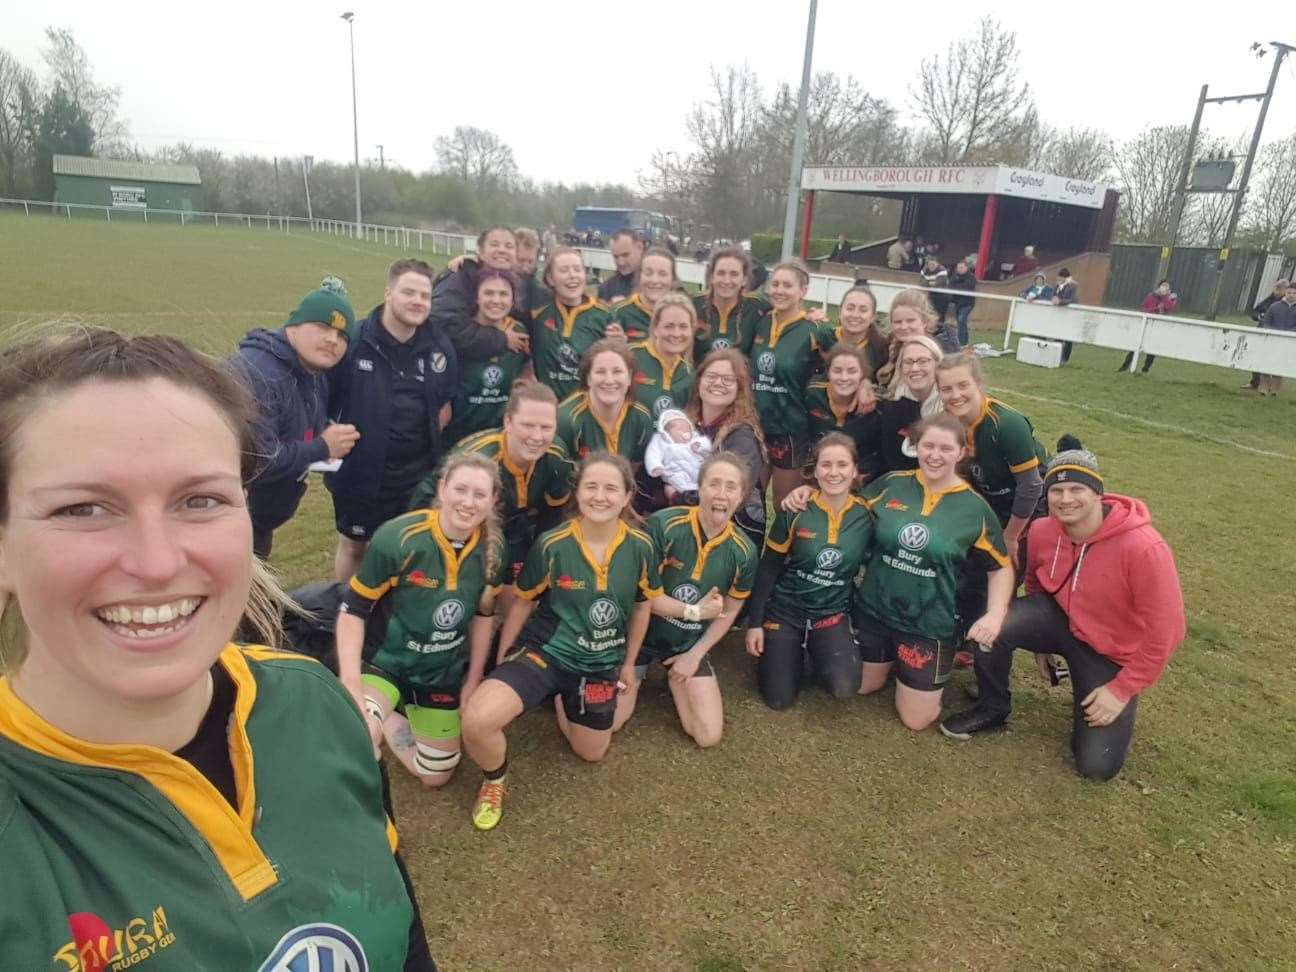 Bury Foxes are all smiles at Wellingborough RFC as they celebrate their promotion with a selfie (8337940)